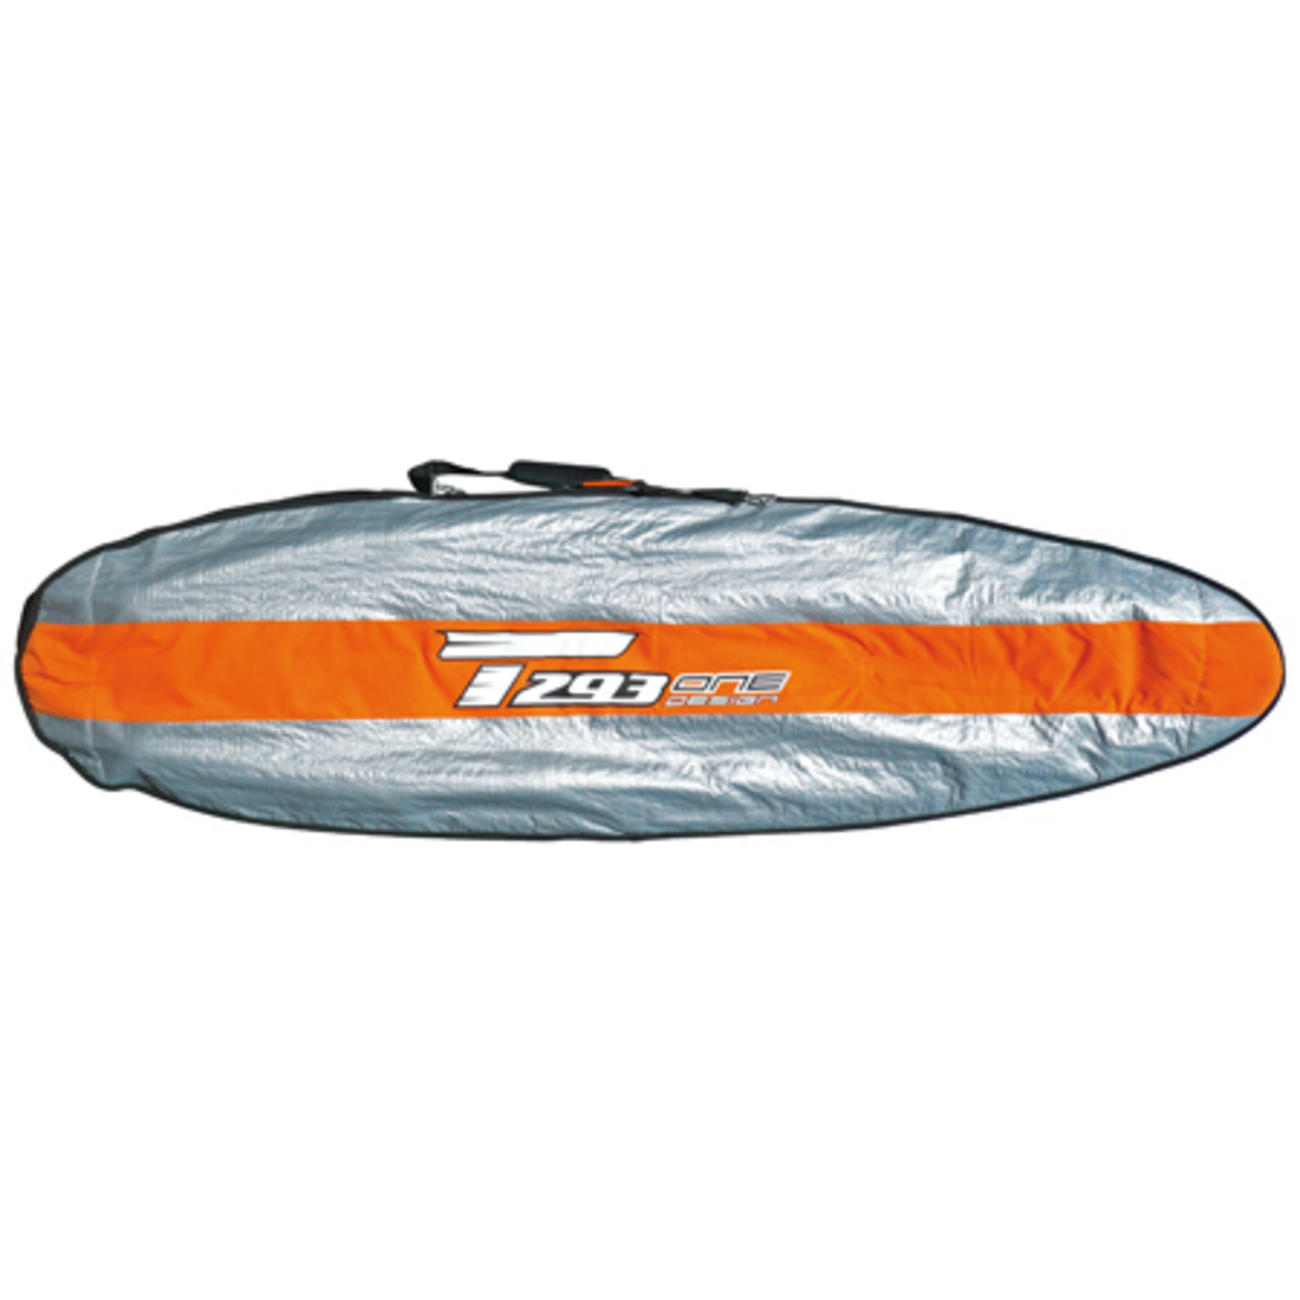 Board Bag for Techno 293 OD